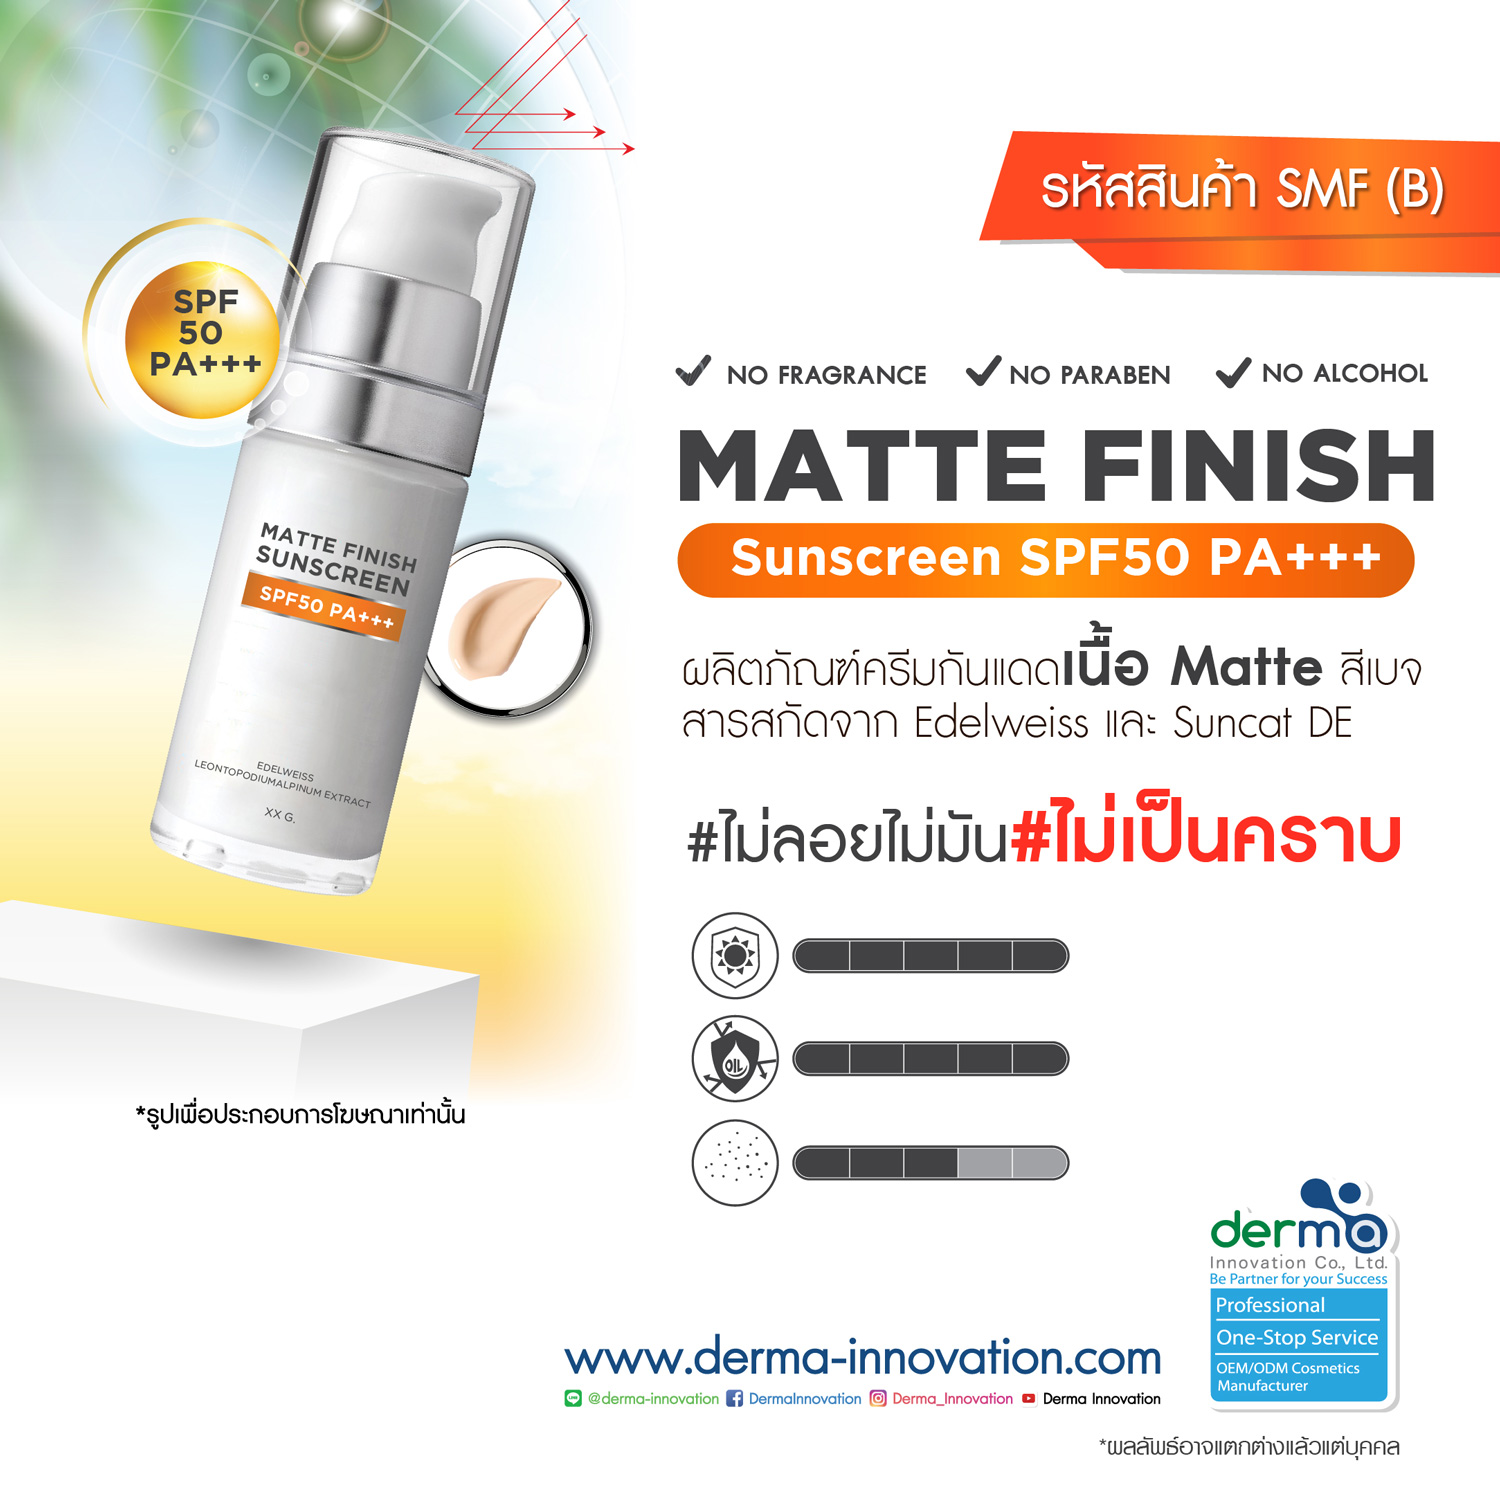 Matte Finish Sunscreen SPF50 PA +++